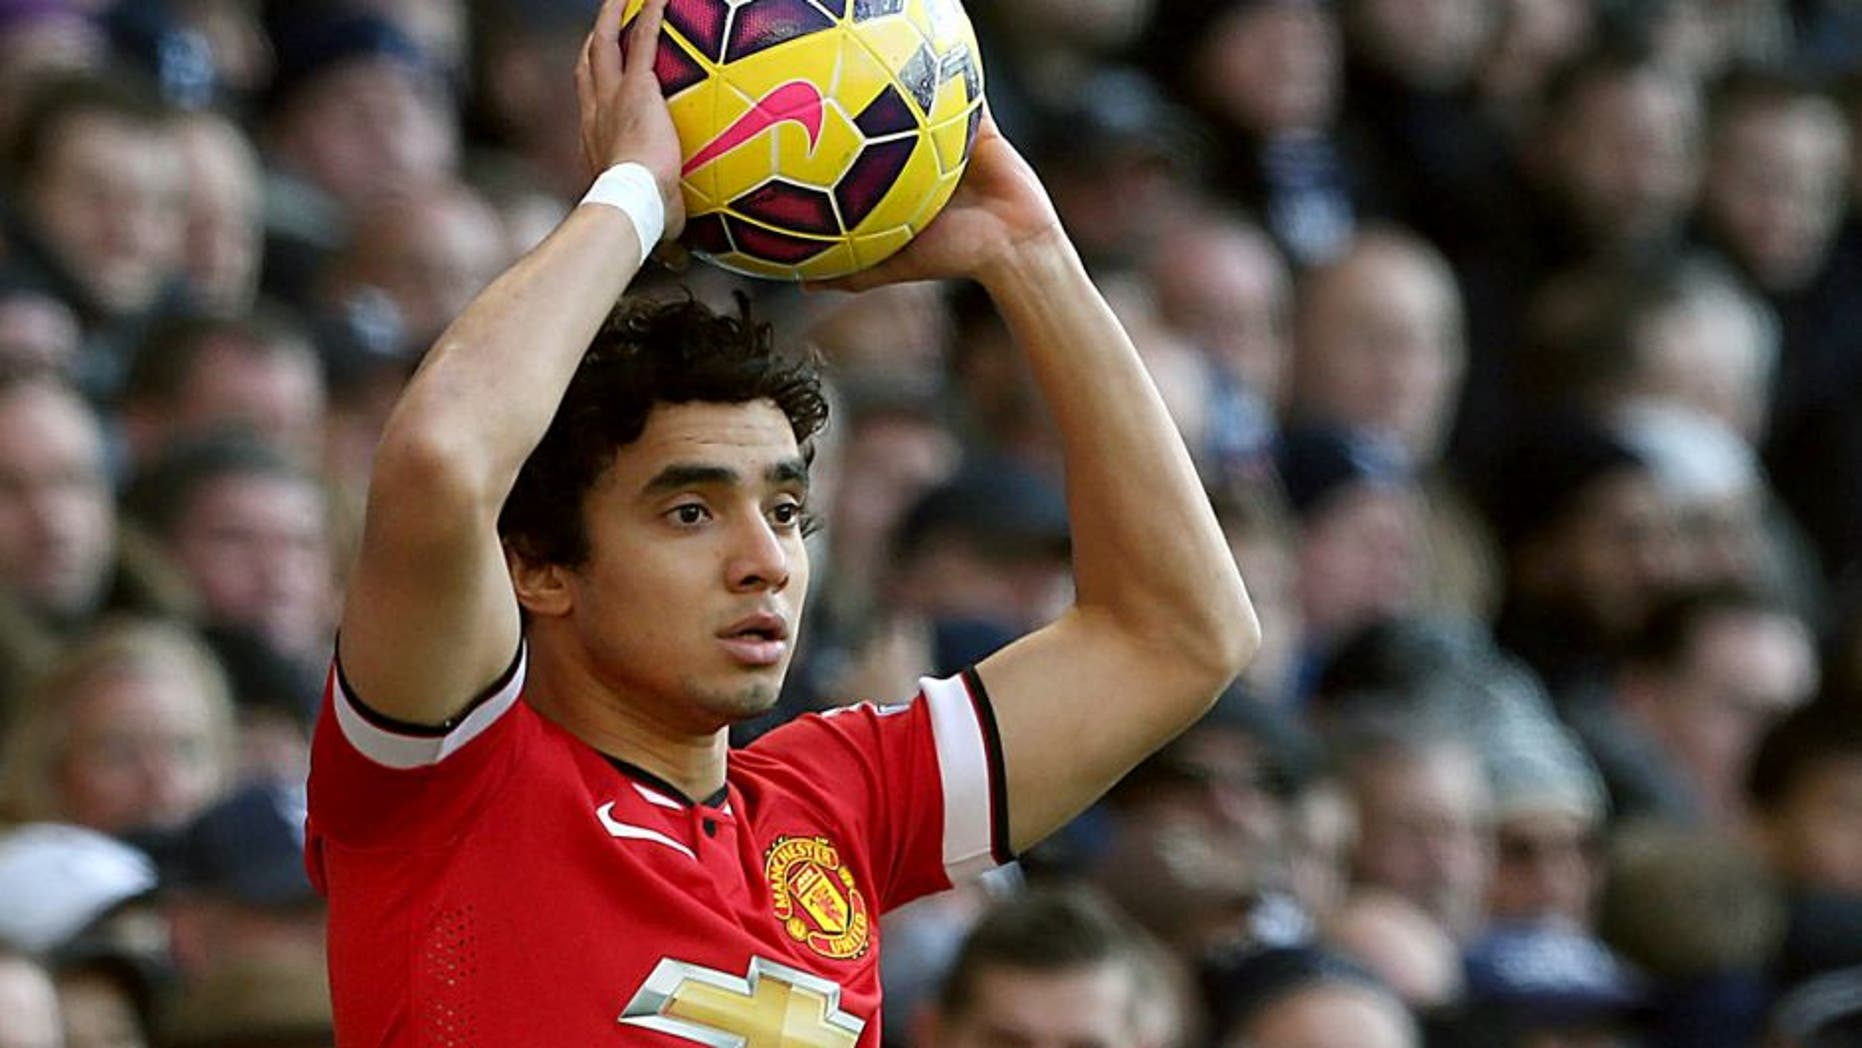 LONDON, ENGLAND - DECEMBER 28: Rafael da Silva of Manchester United in action during the Barclays Premier League match between Tottenham Hotspur and Manchester United at White Hart Lane on December 28, 2014 in London, England. (Photo by John Peters/Man Utd via Getty Images)